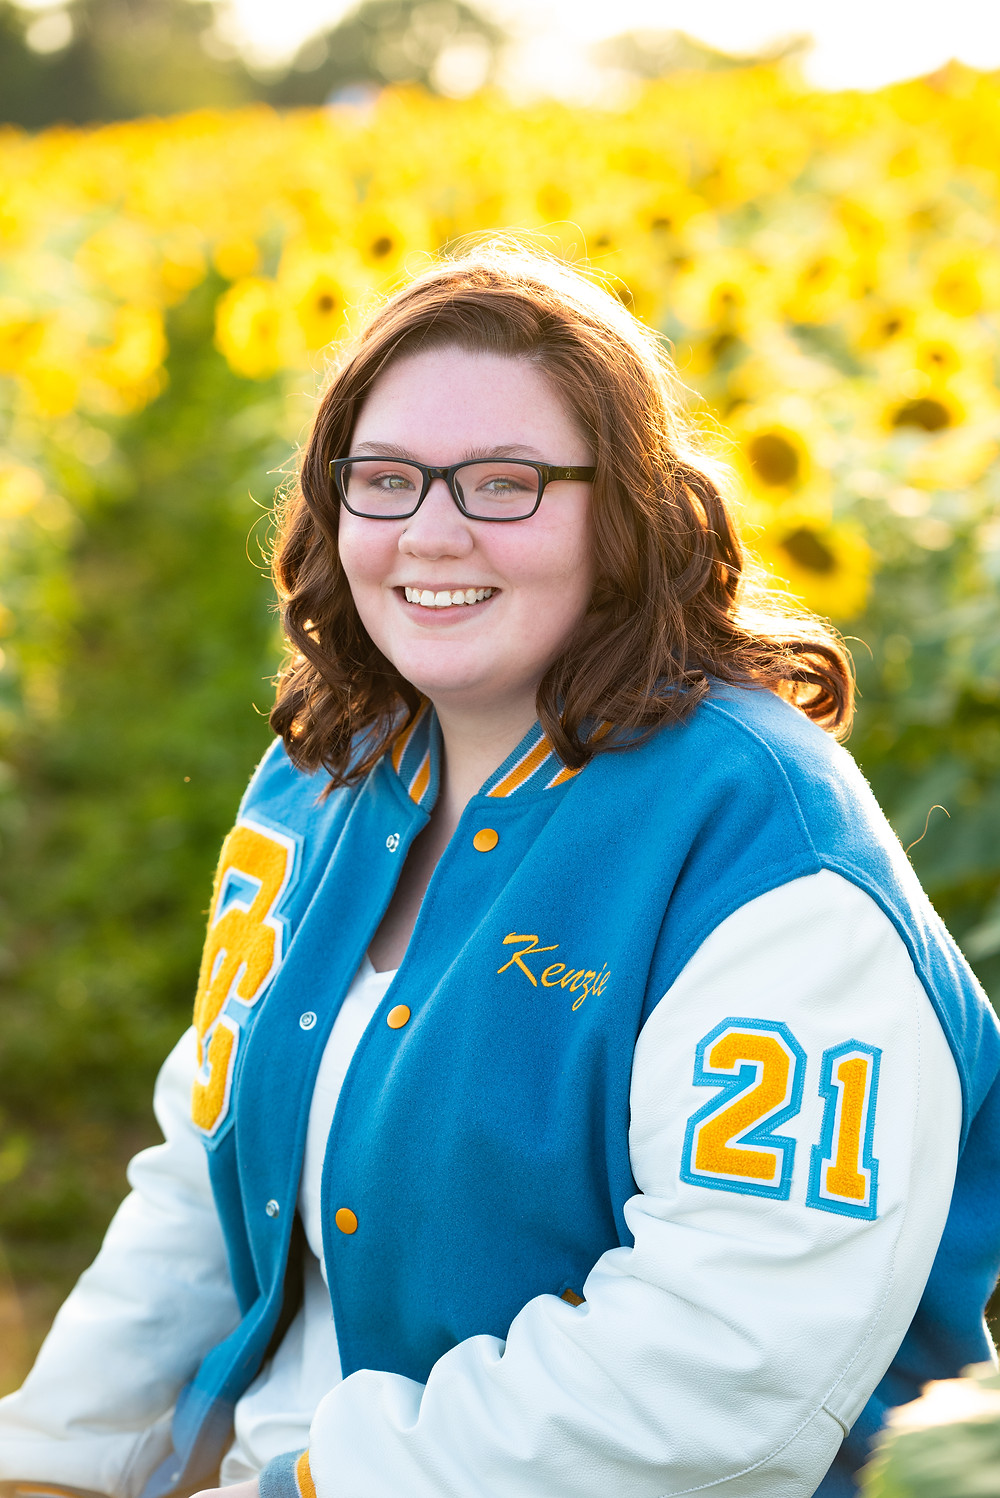 Senior girl photos in a letterman jacket in a sunflower field